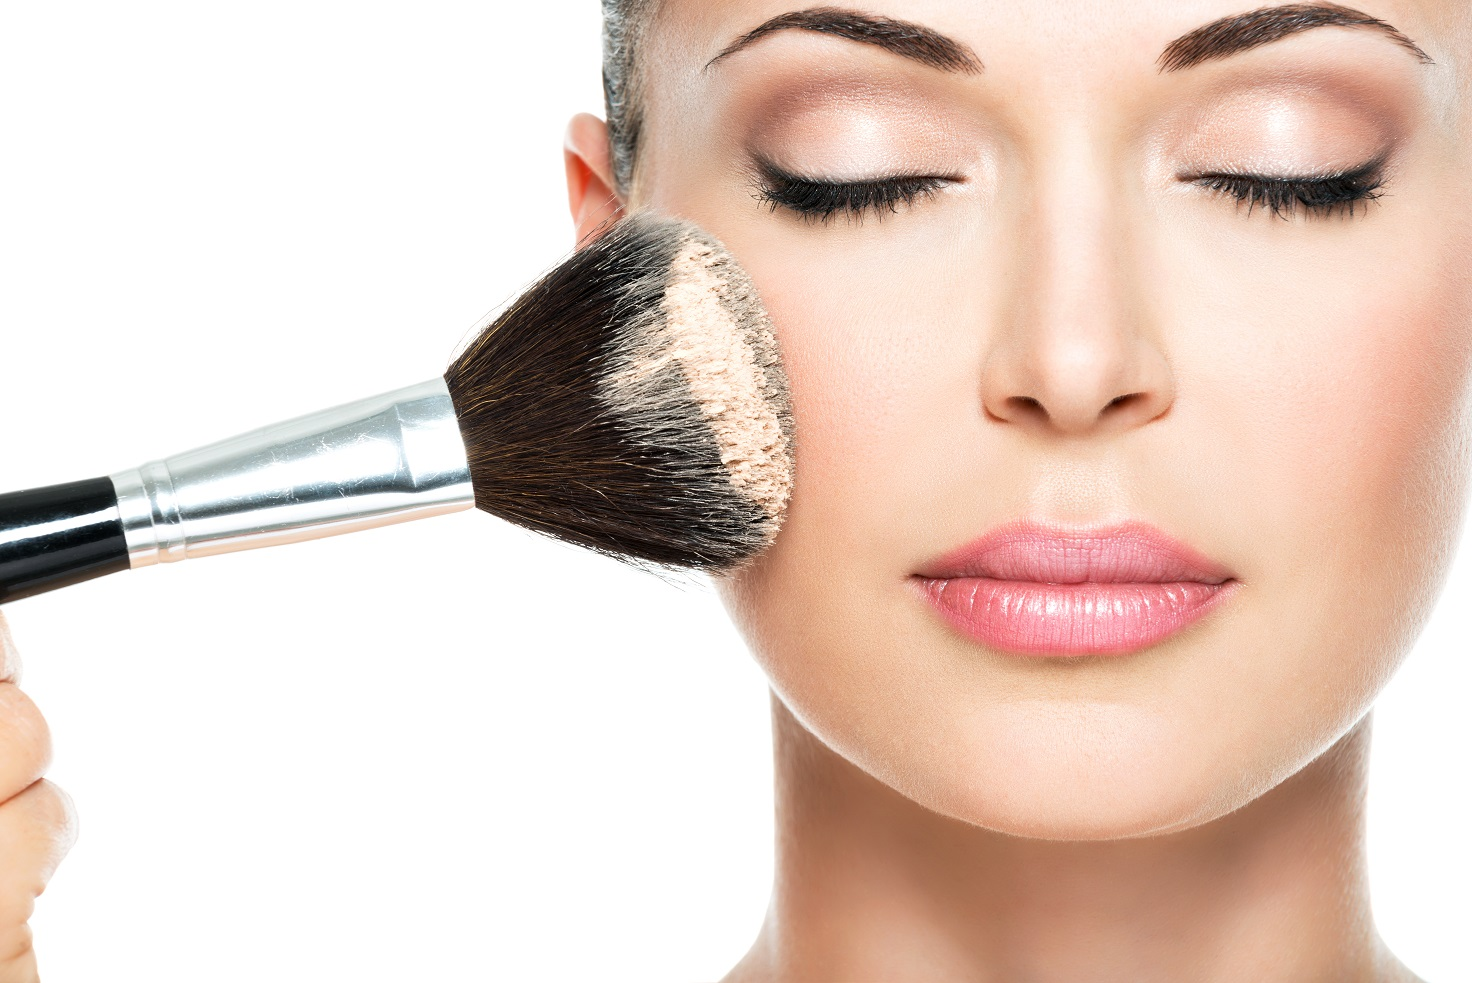 Make-Up: ecco come truccarci per una serata speciale